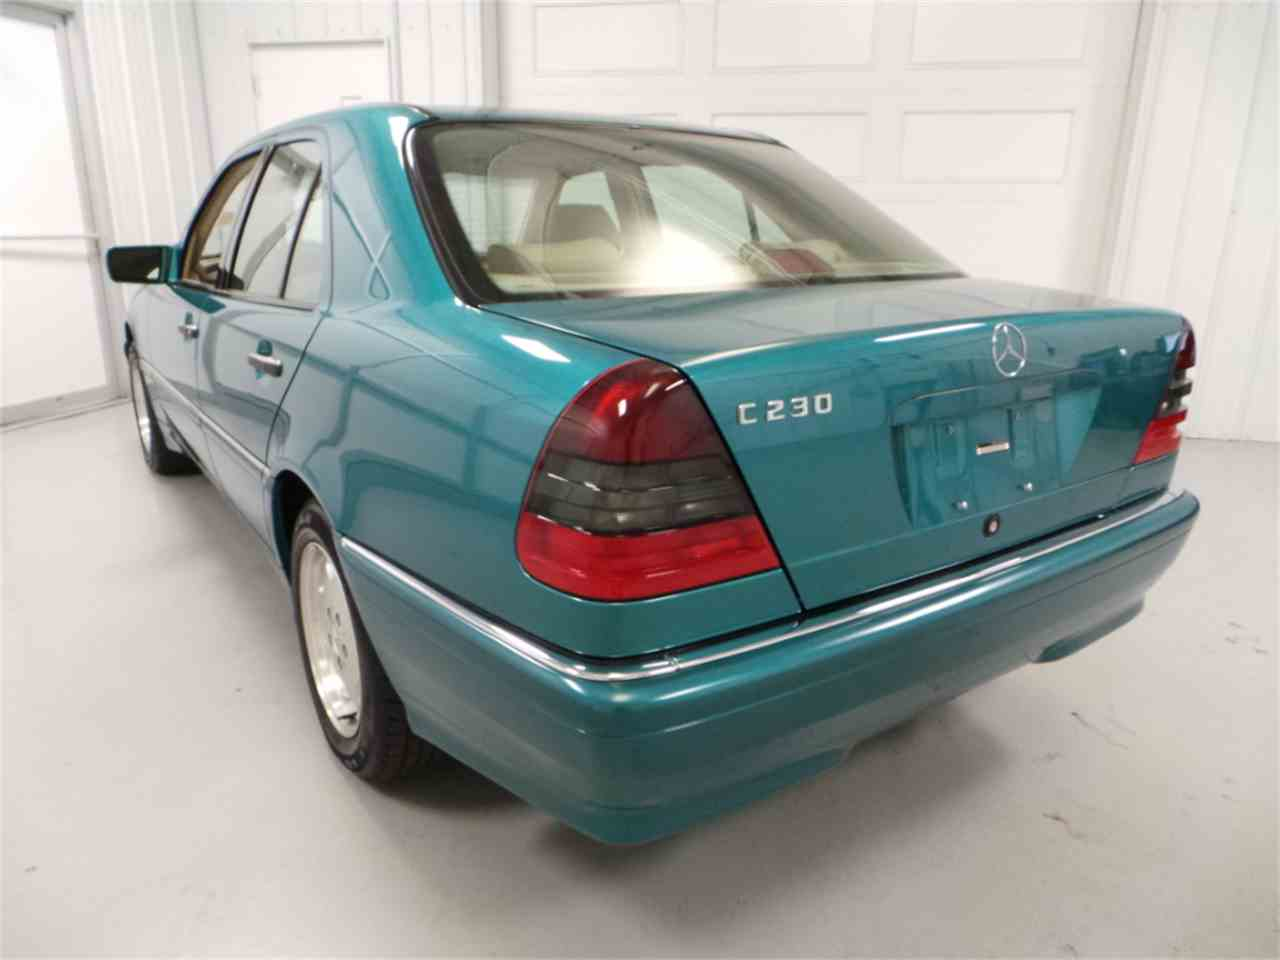 1998 mercedes benz c230 sedan for sale for Mercedes benz for sale under 5000